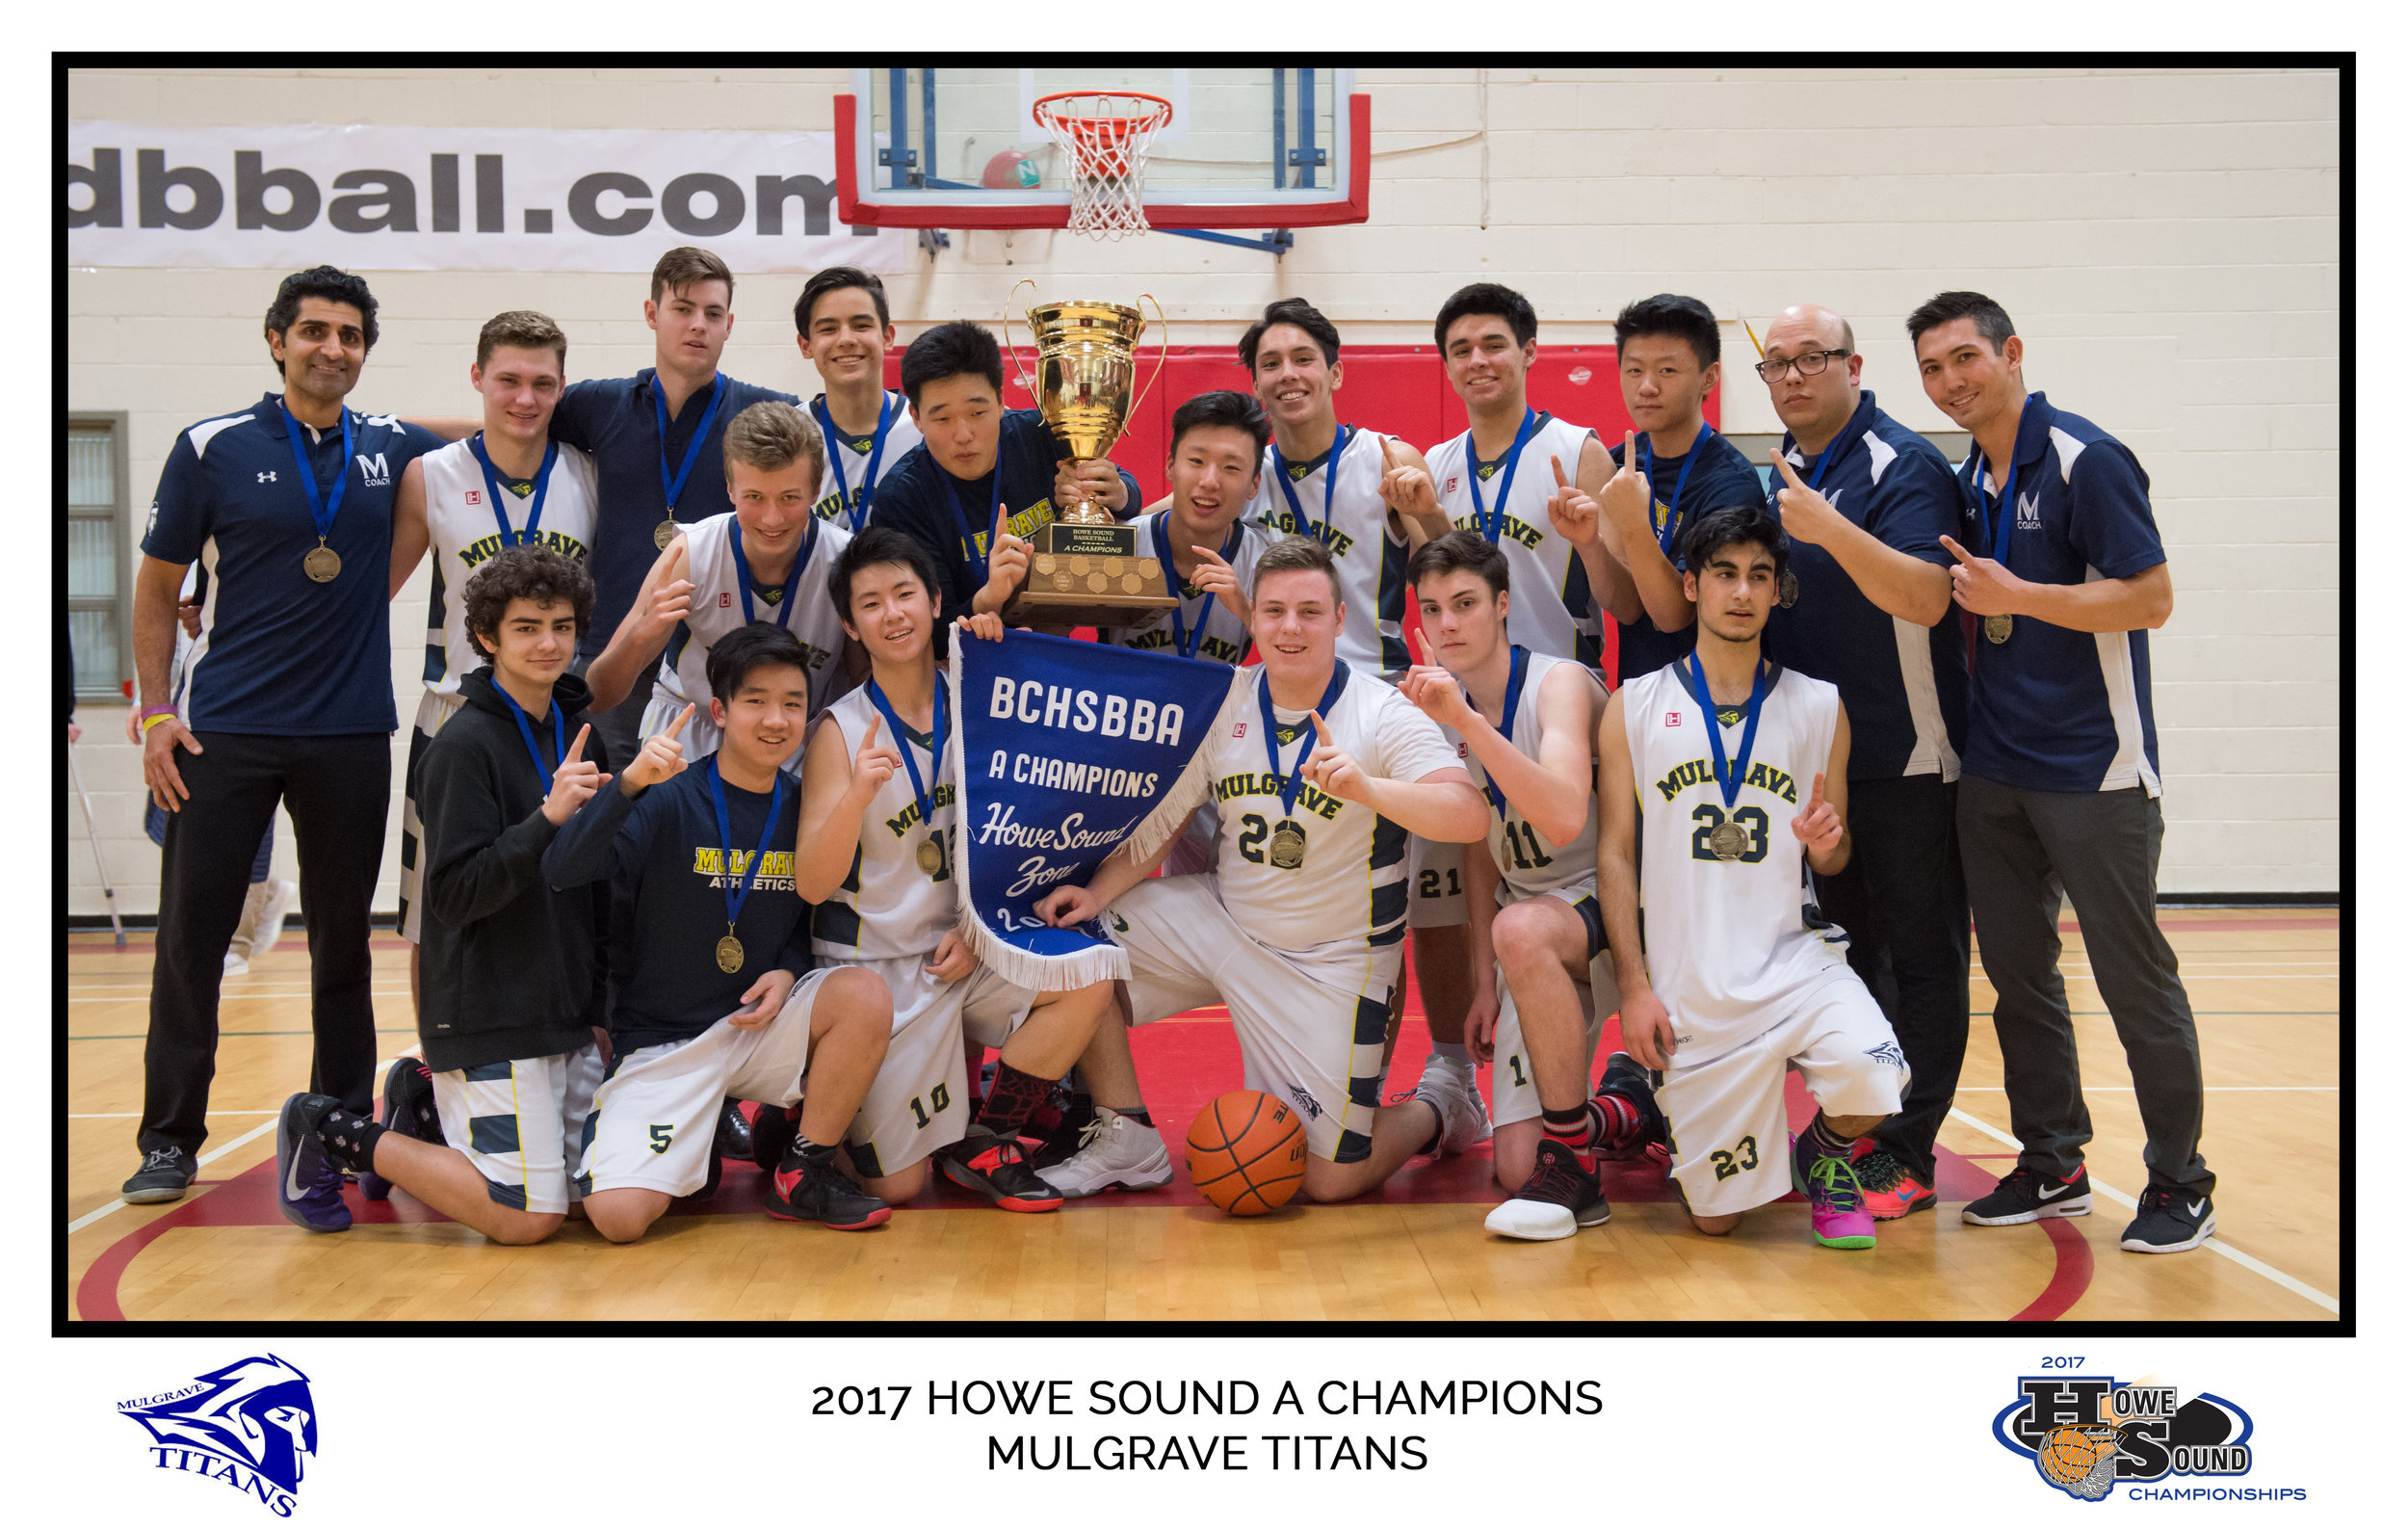 2017mulgrave champs w copy.jpg